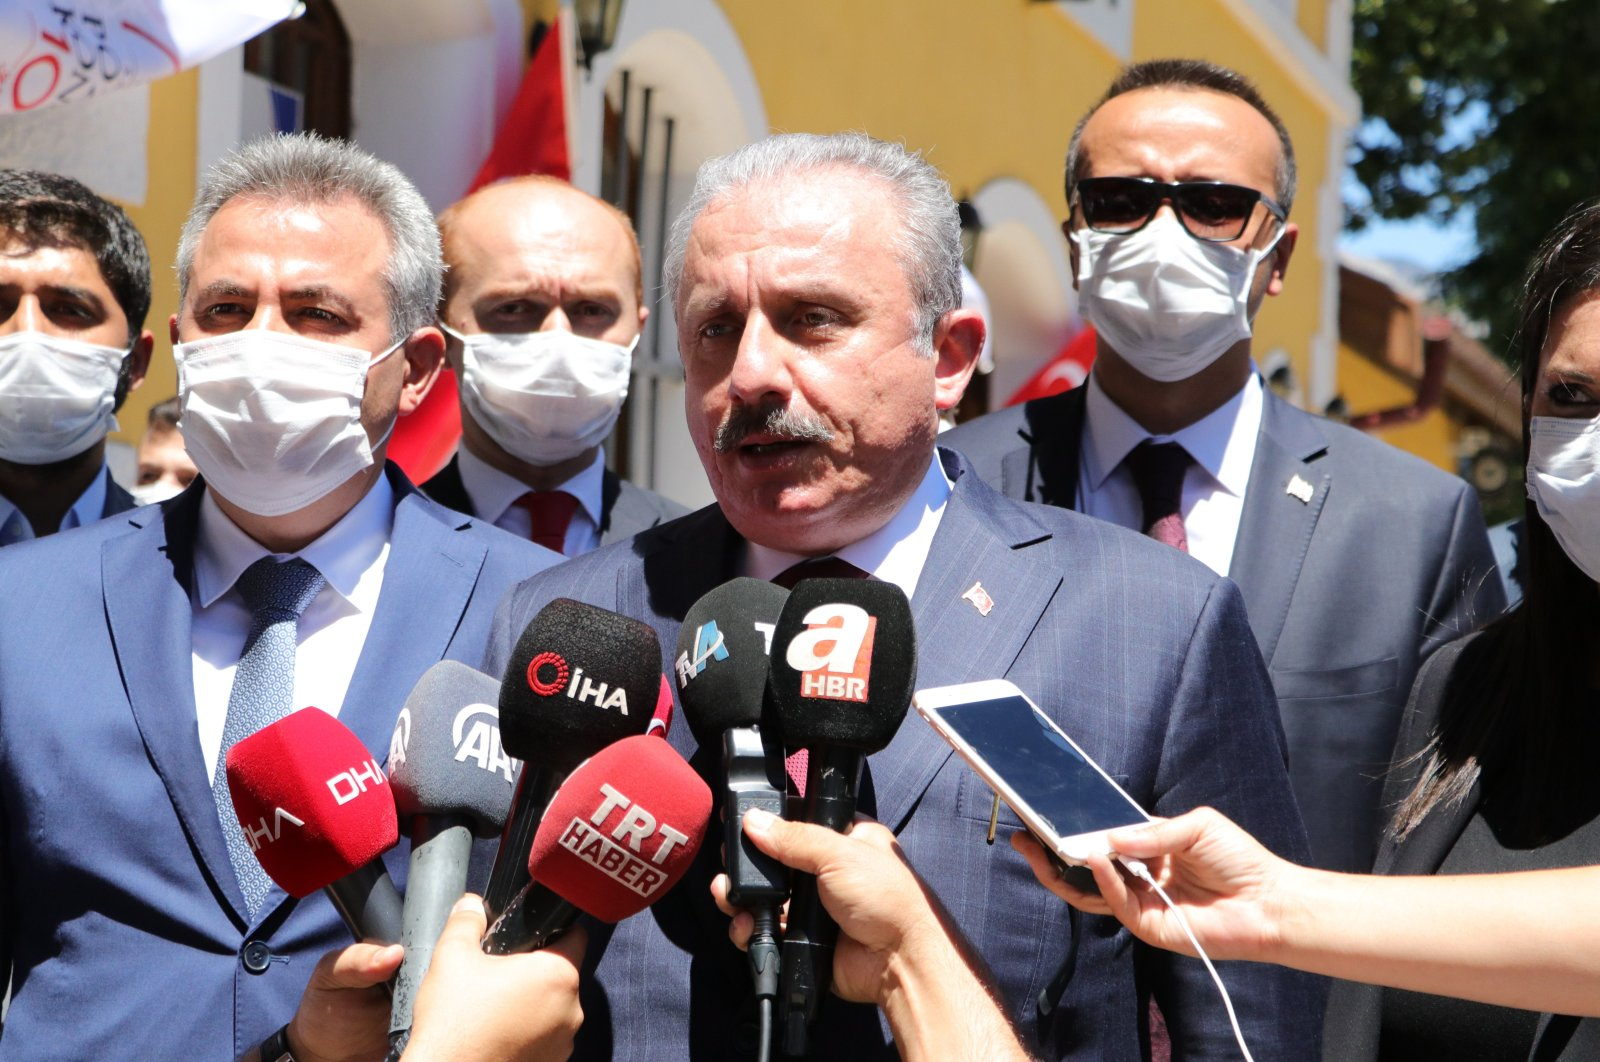 Parliament Head Mustafa Şentop speaks to journalists after a ceremony for the 100th year of the Pozantı Congress in southern Adana province, Turkey, Aug. 5, 2020. (IHA Photo)